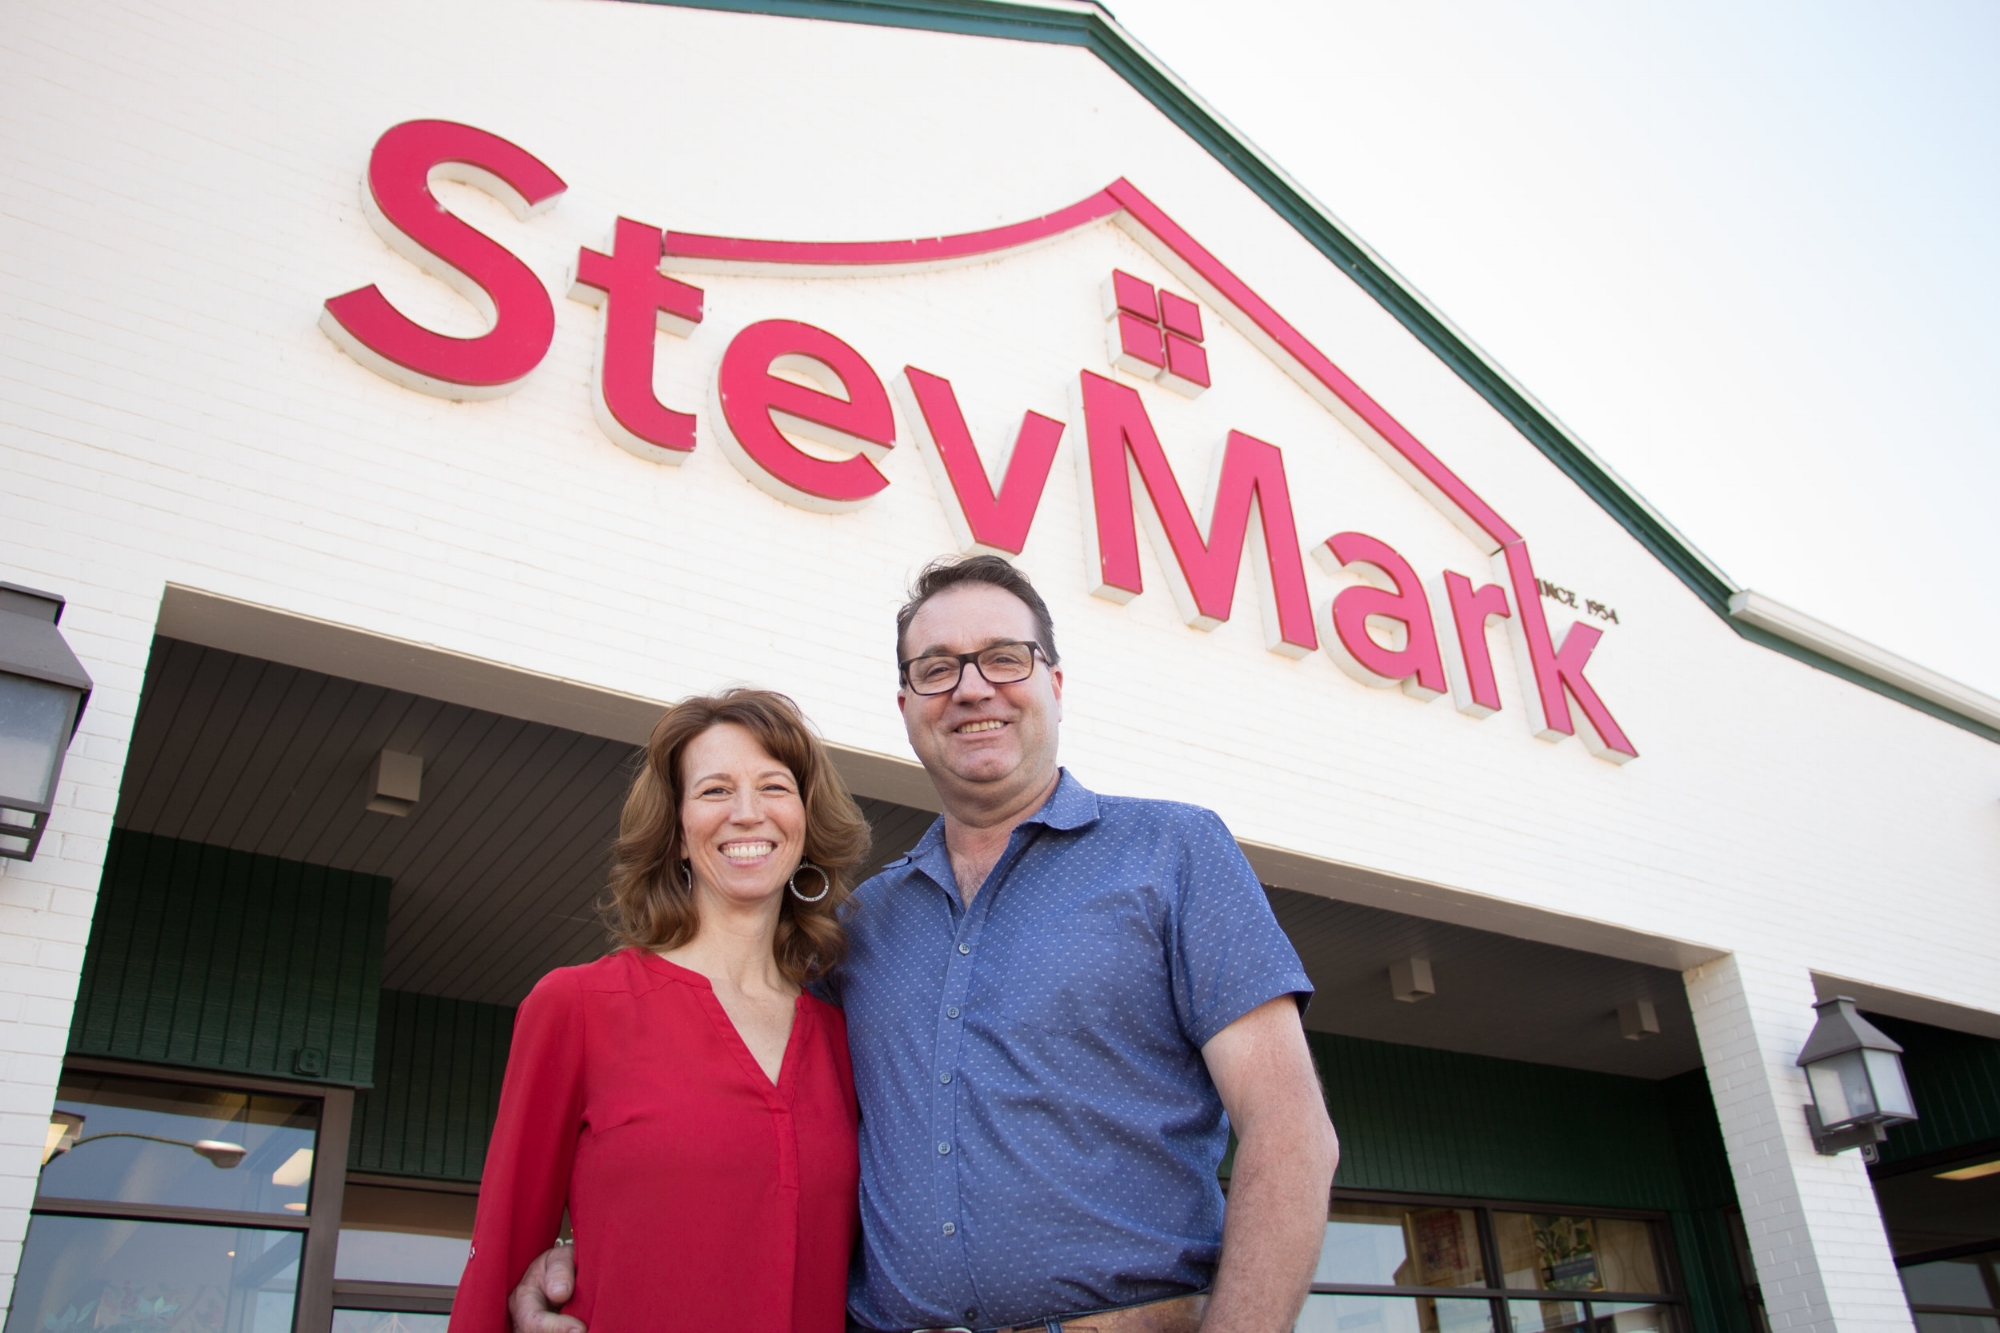 Pictured Above: Mike and Carole Harvell, current owners and operators of StevMark